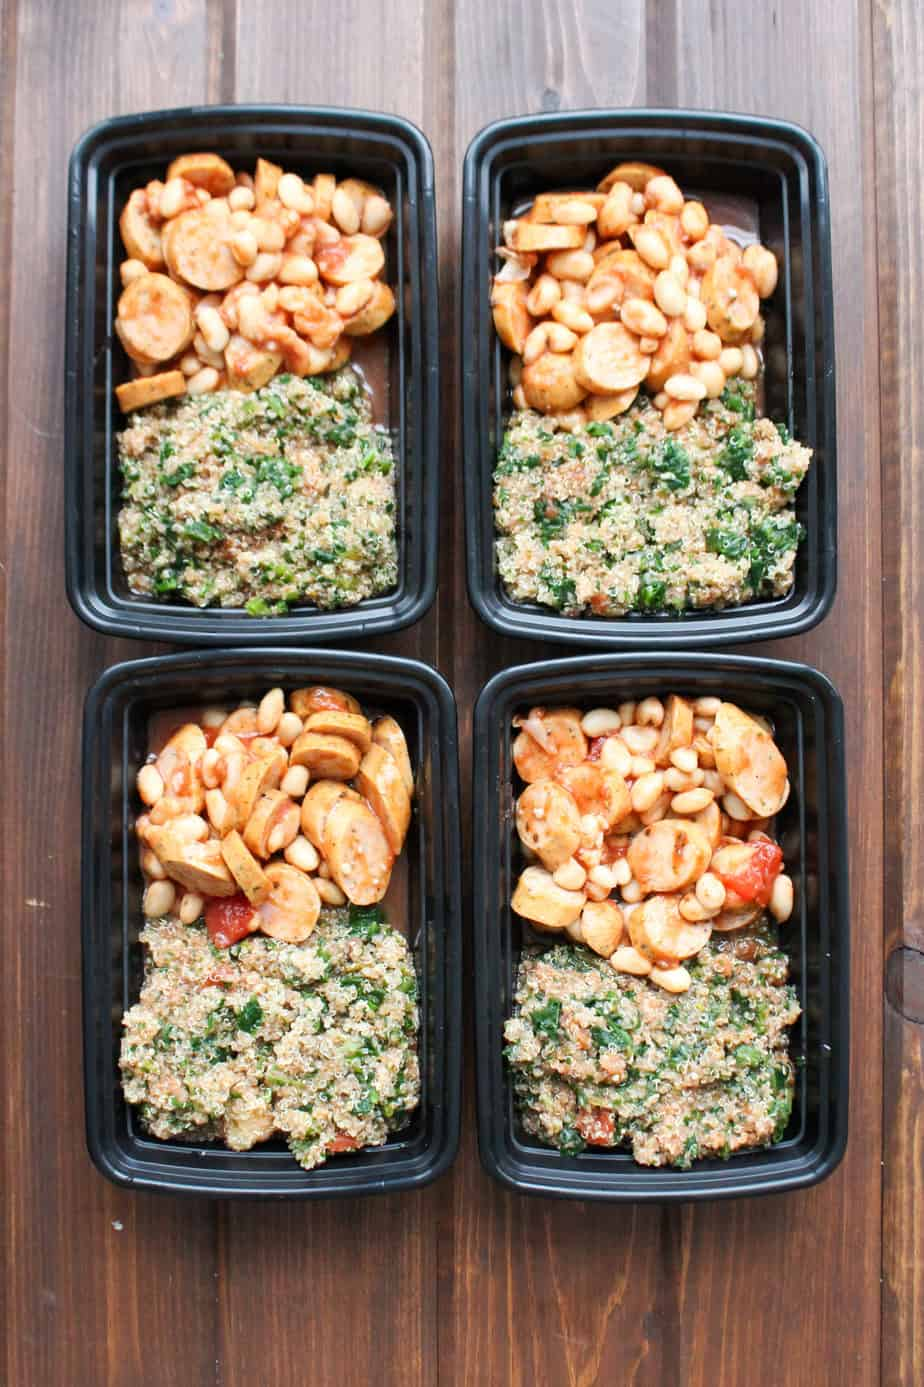 Italian Quinoa Marinara Frozen Meal Prep Containers | Frugal Nutrition